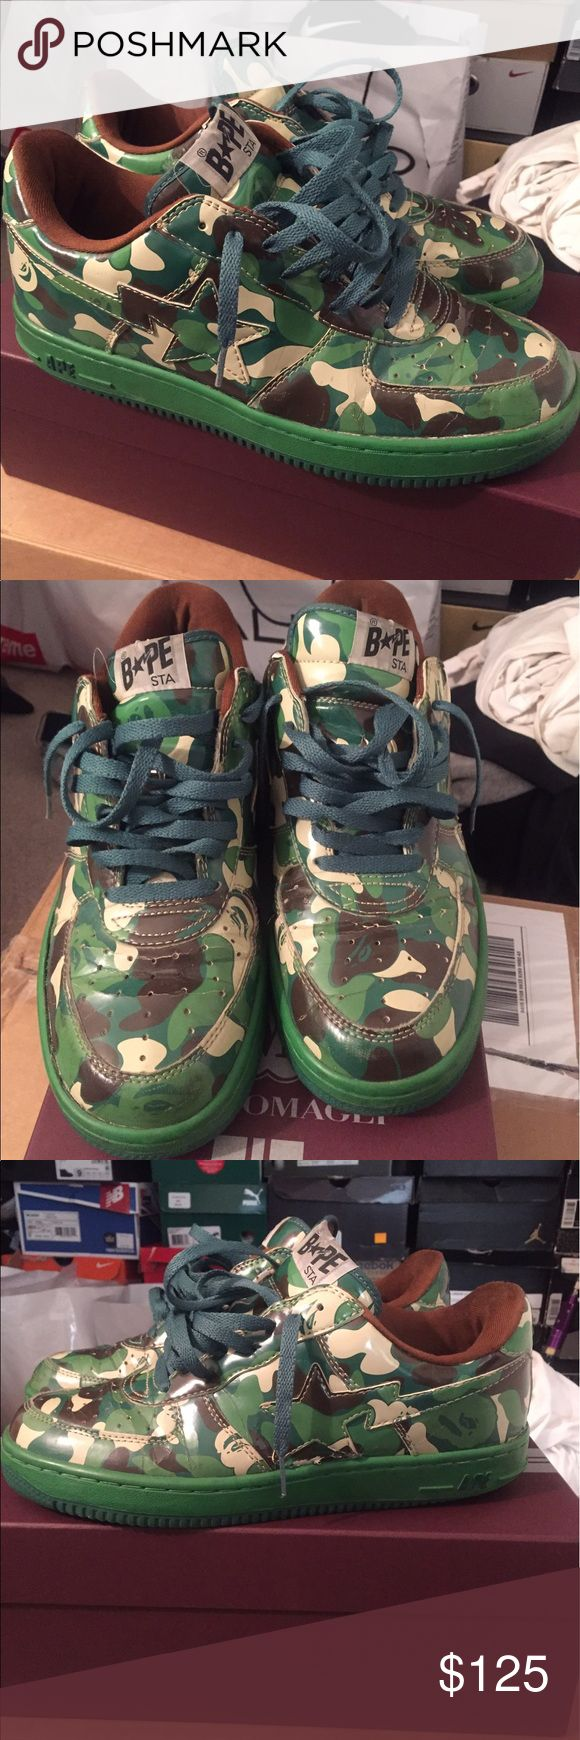 Bape Apes   Bape Apes   condo 7/10 flaws some heel drag as shown in the picture Bape Shoes Sneakers